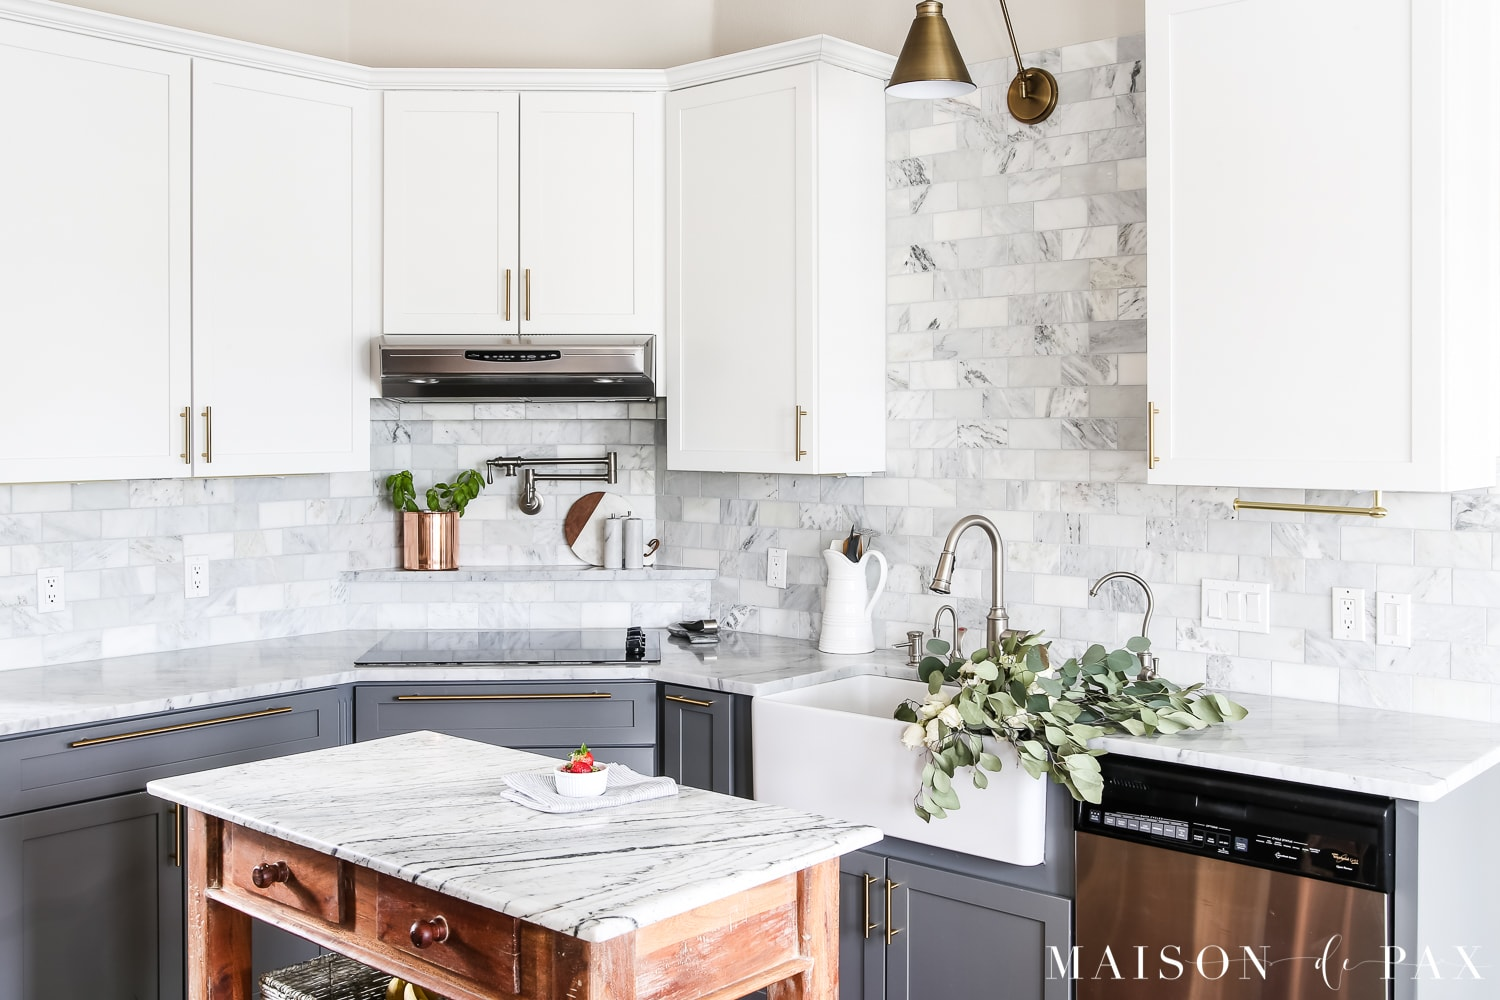 Simple Spring Kitchen: 5 simple tips to help you refresh your kitchen without spending money on new things! #springkitchen #kitcheninspo #marblekitchen #kitchendesign #springdecor #springdecorating #kitchendecor #twotonekitchen